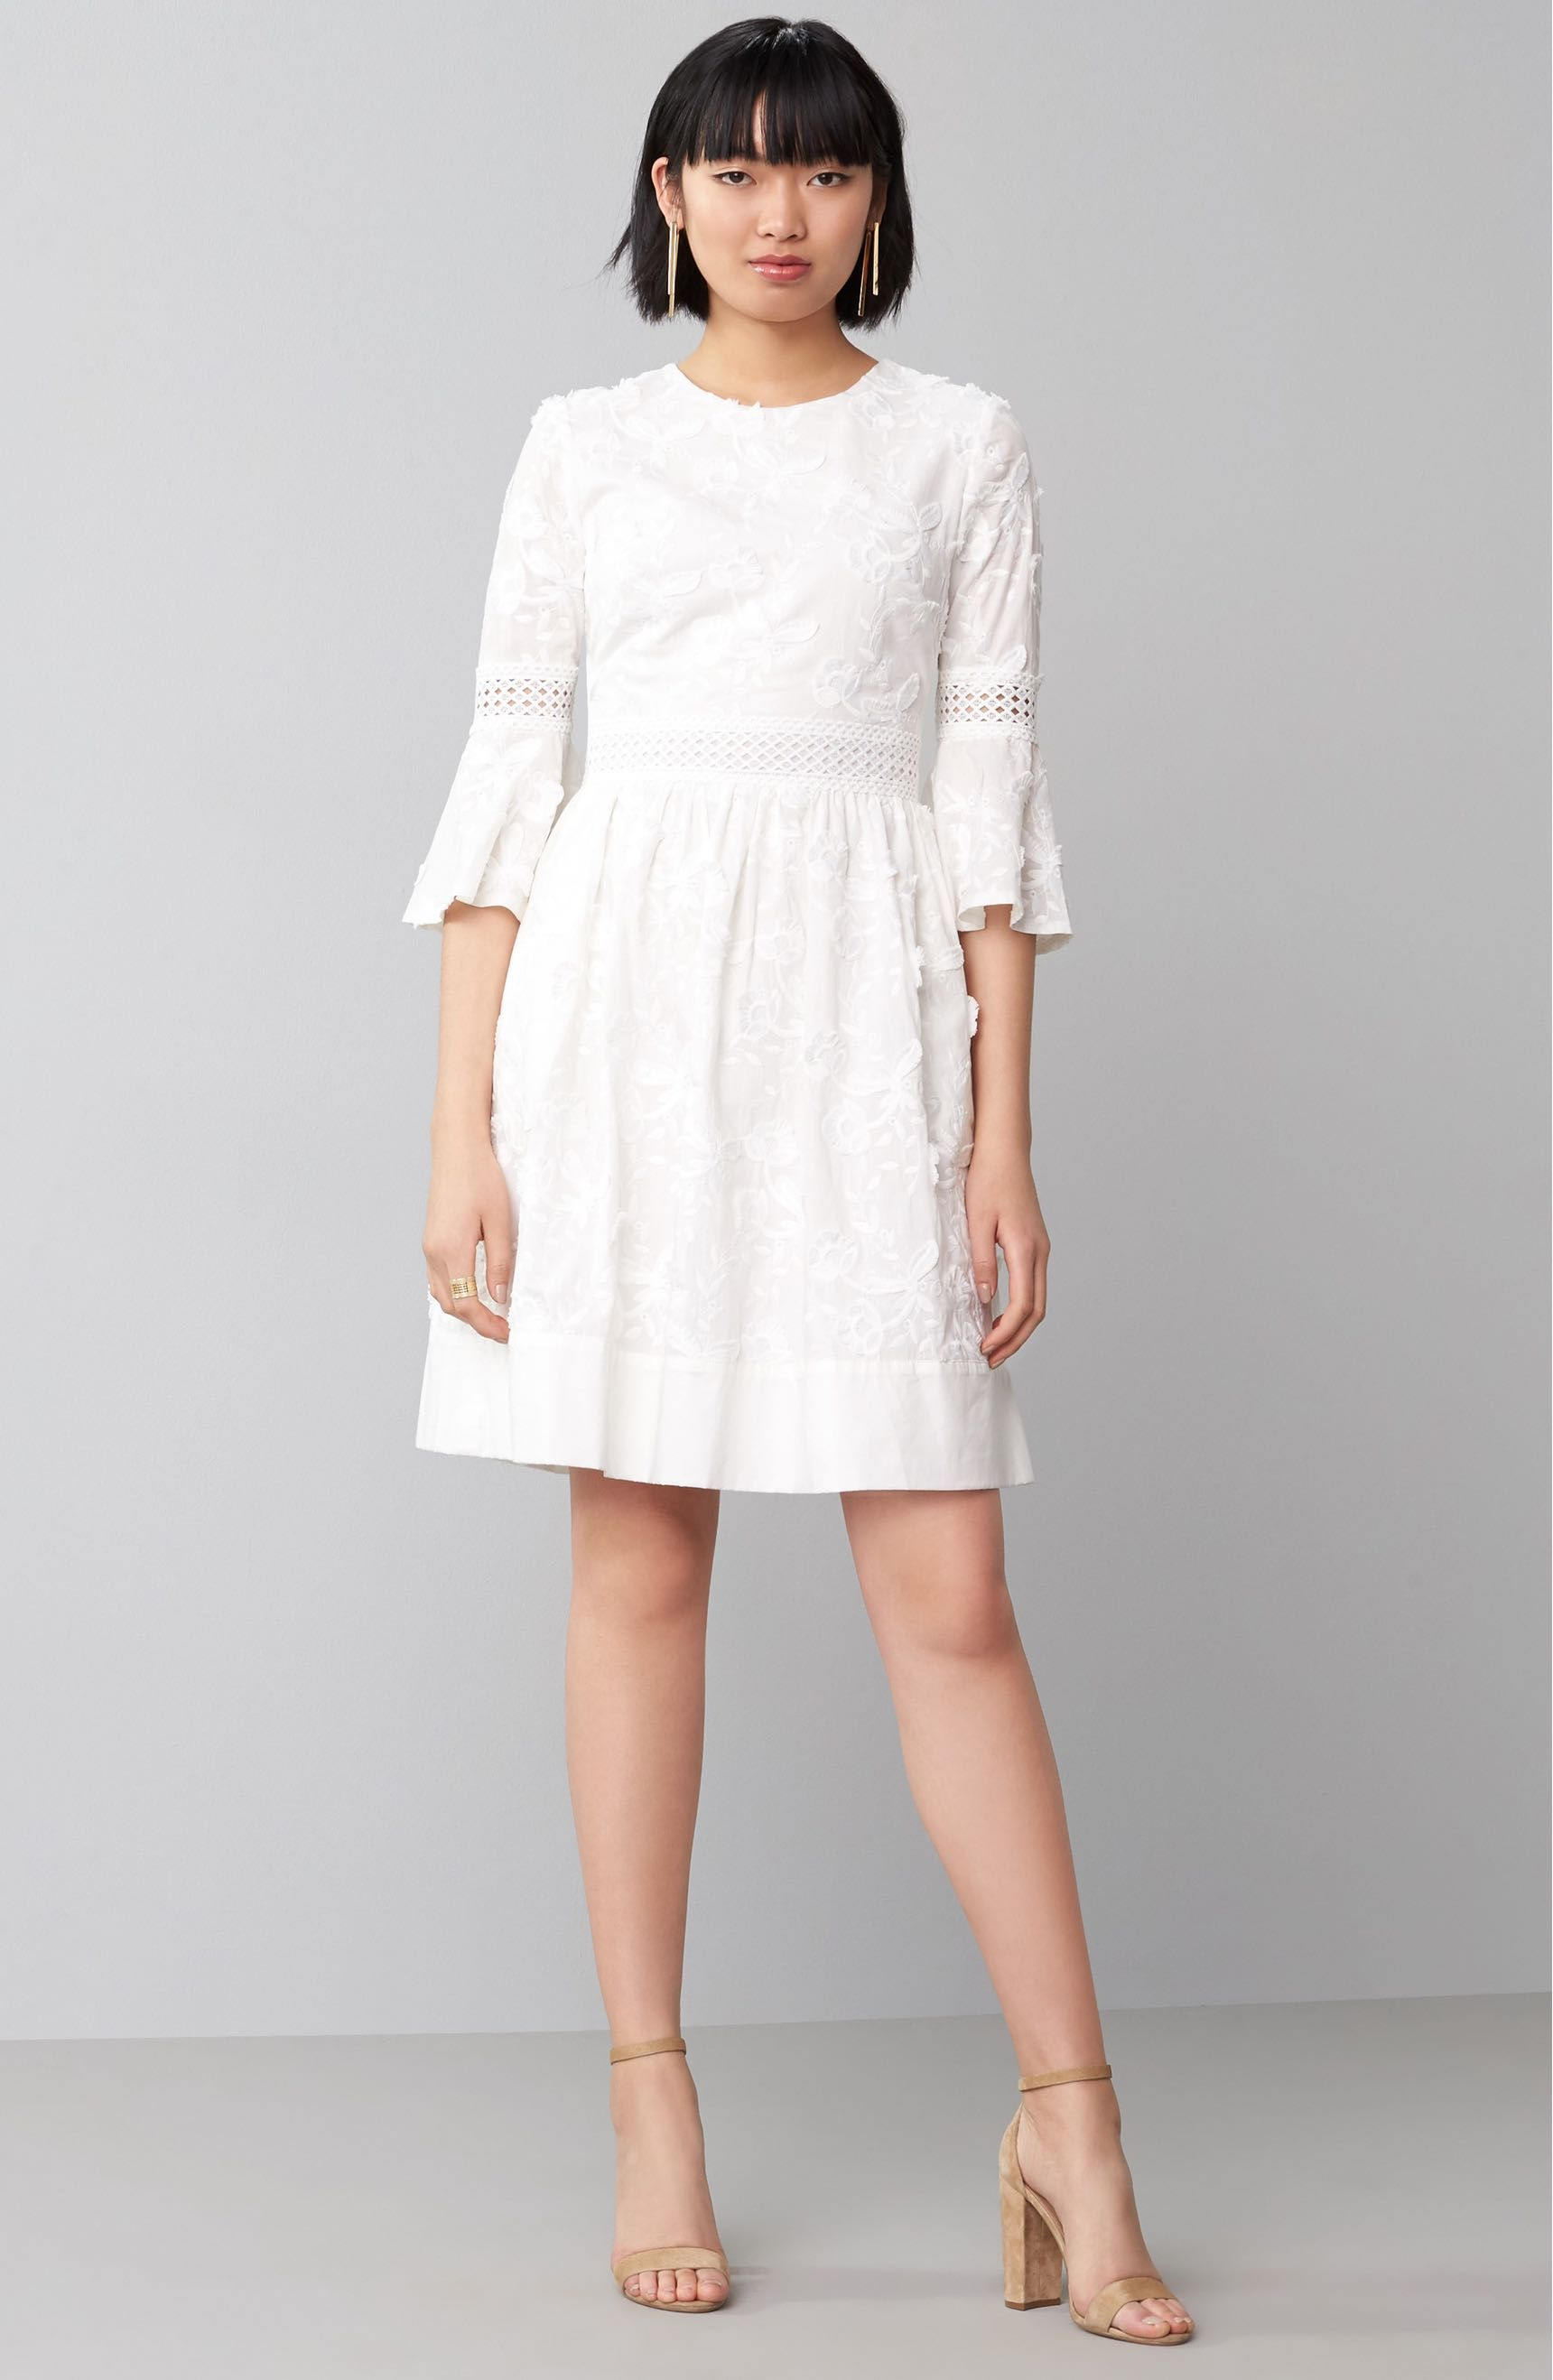 Gorgeous white Fit & Flare Dress with lace detail & bell sleeves ...